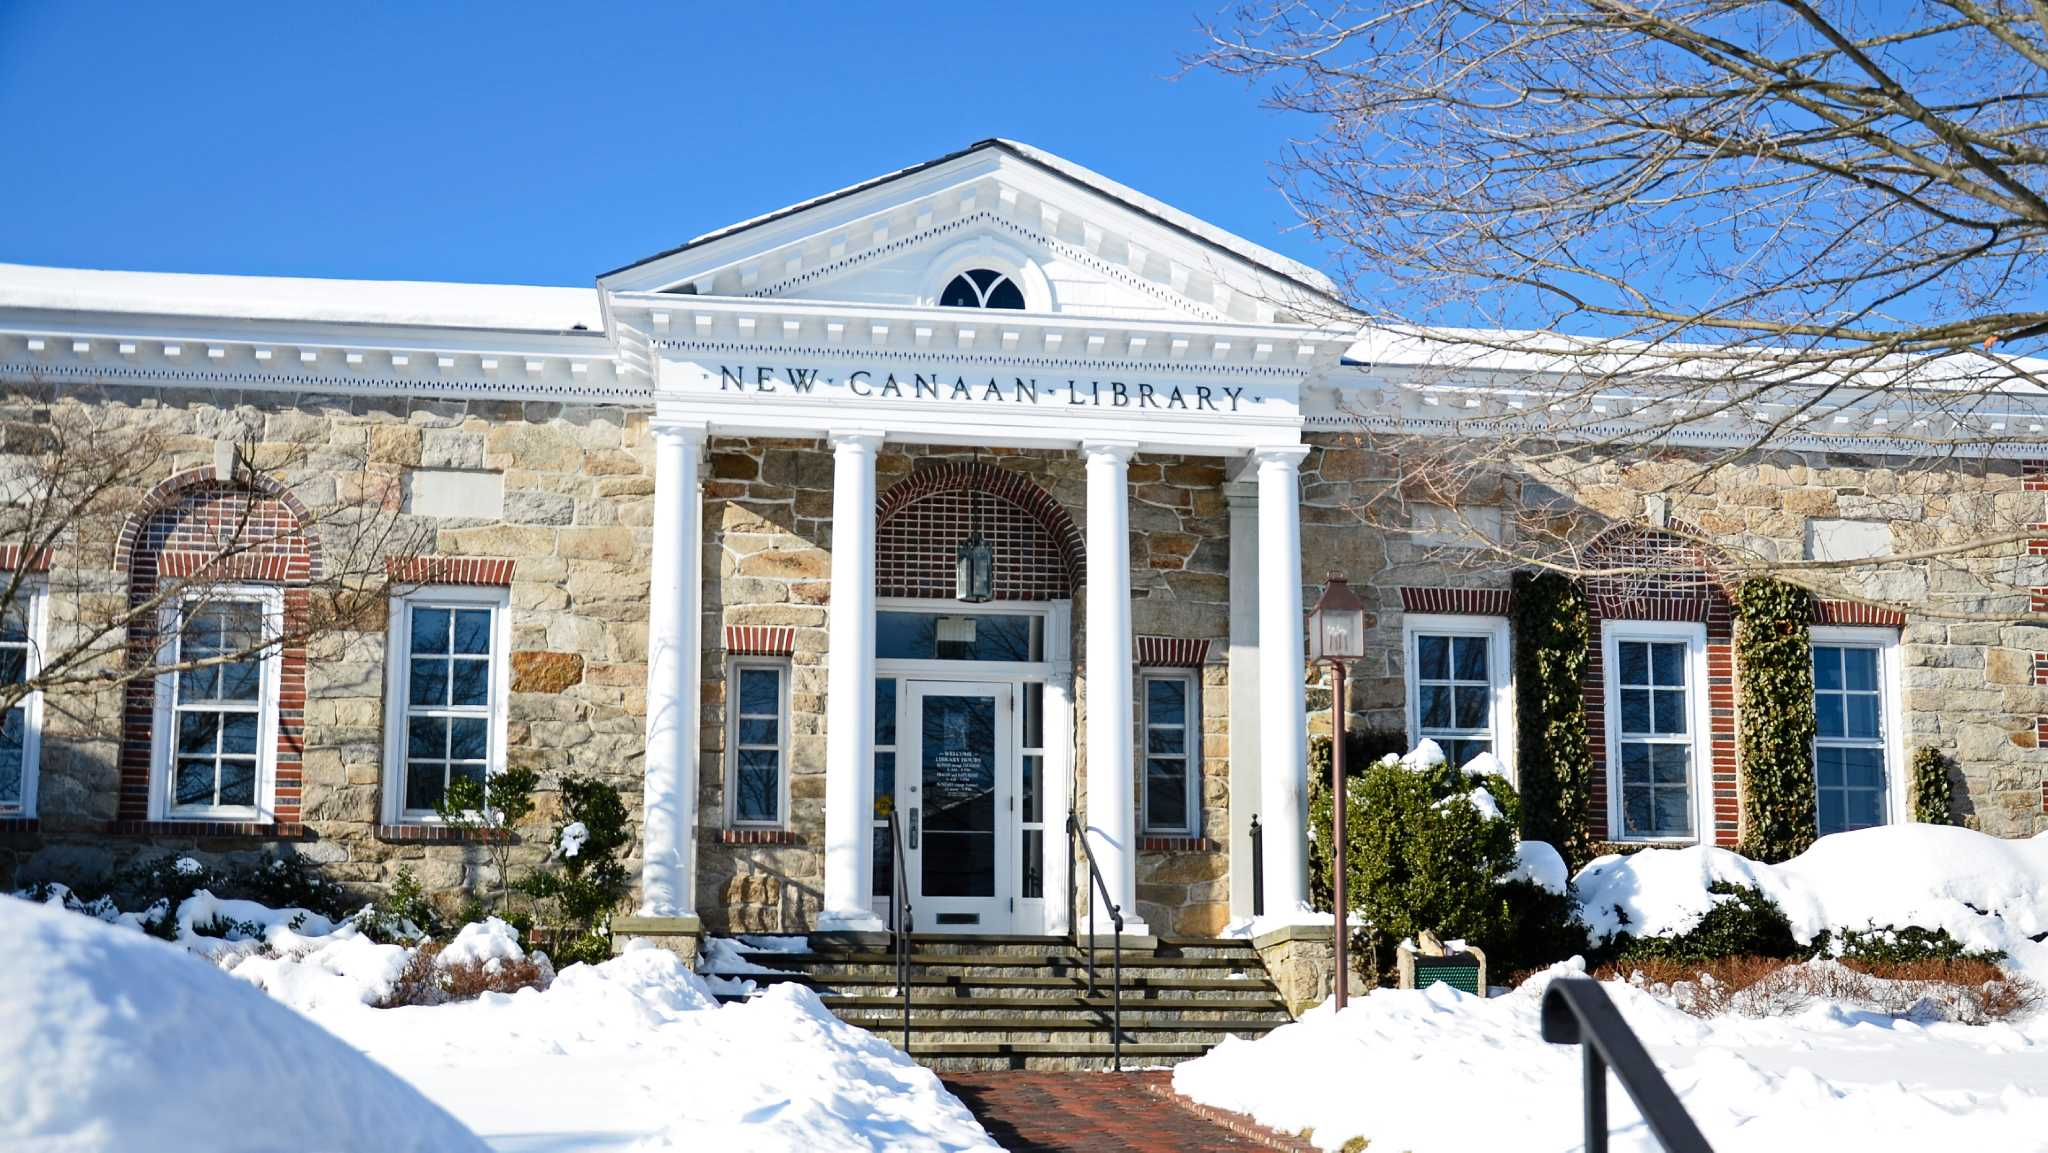 New Canaan Library Eyeing New Building New Canaan News